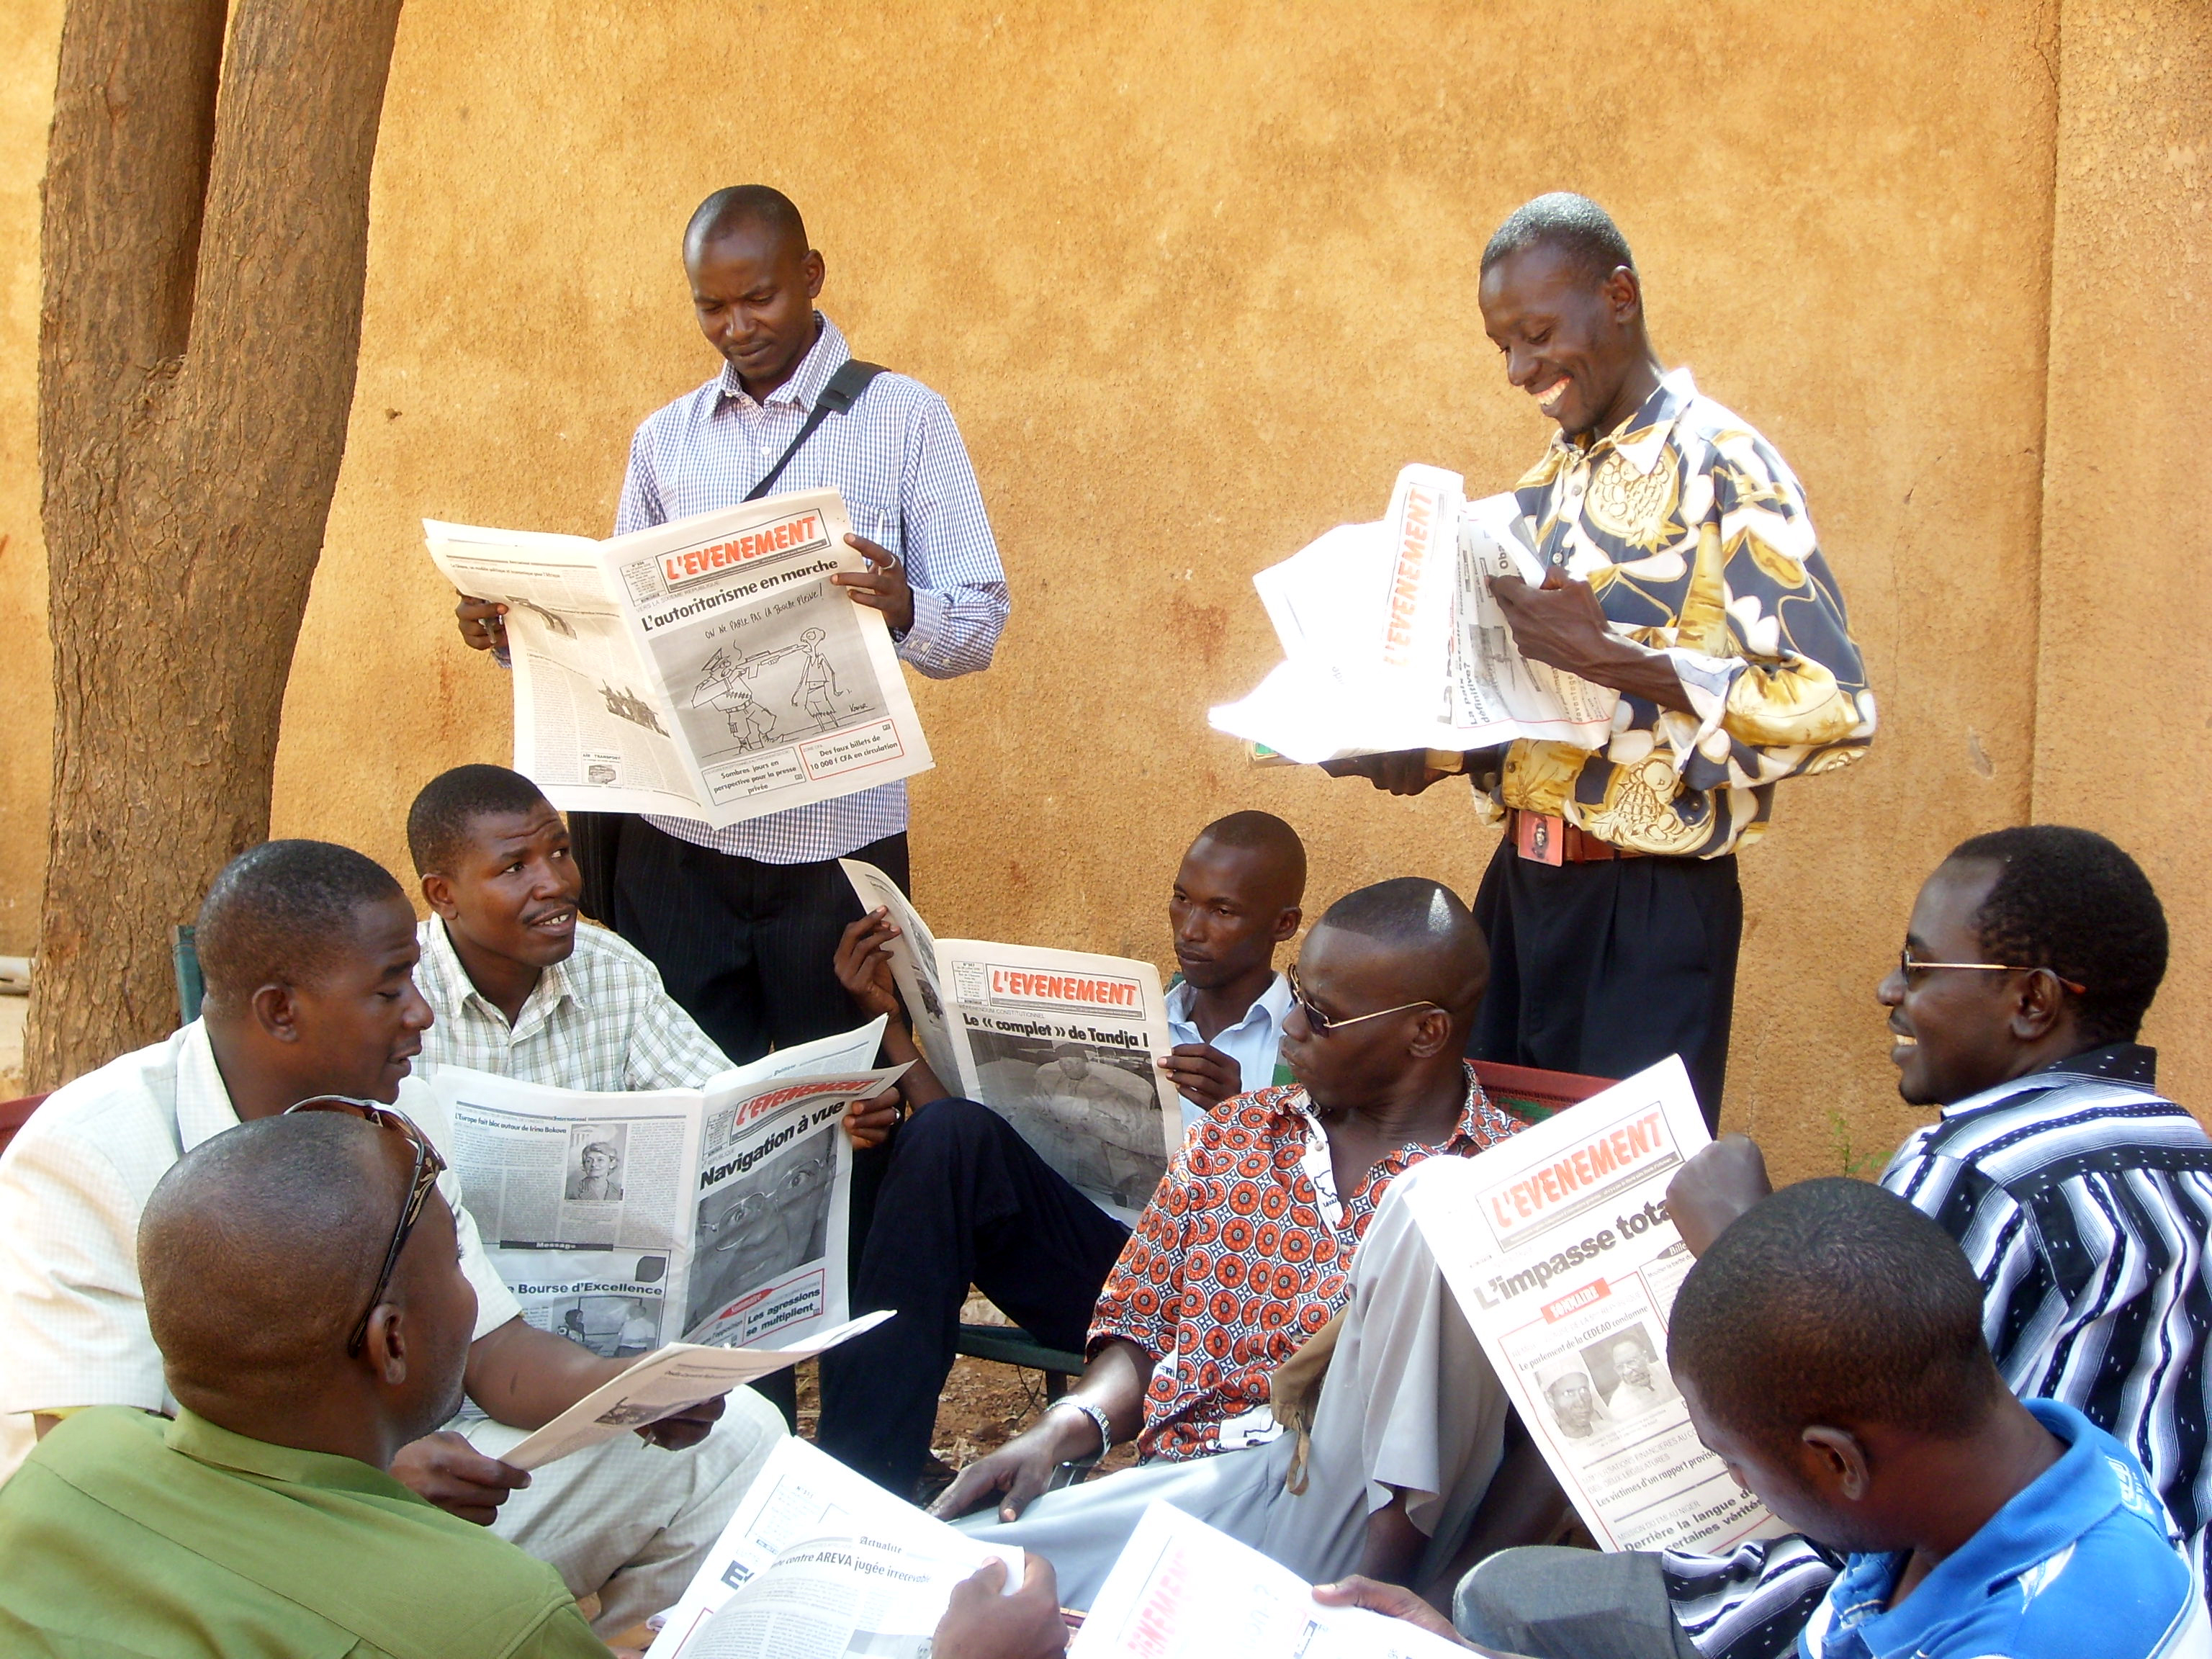 Men in Niamey, Niger, reading newspapers